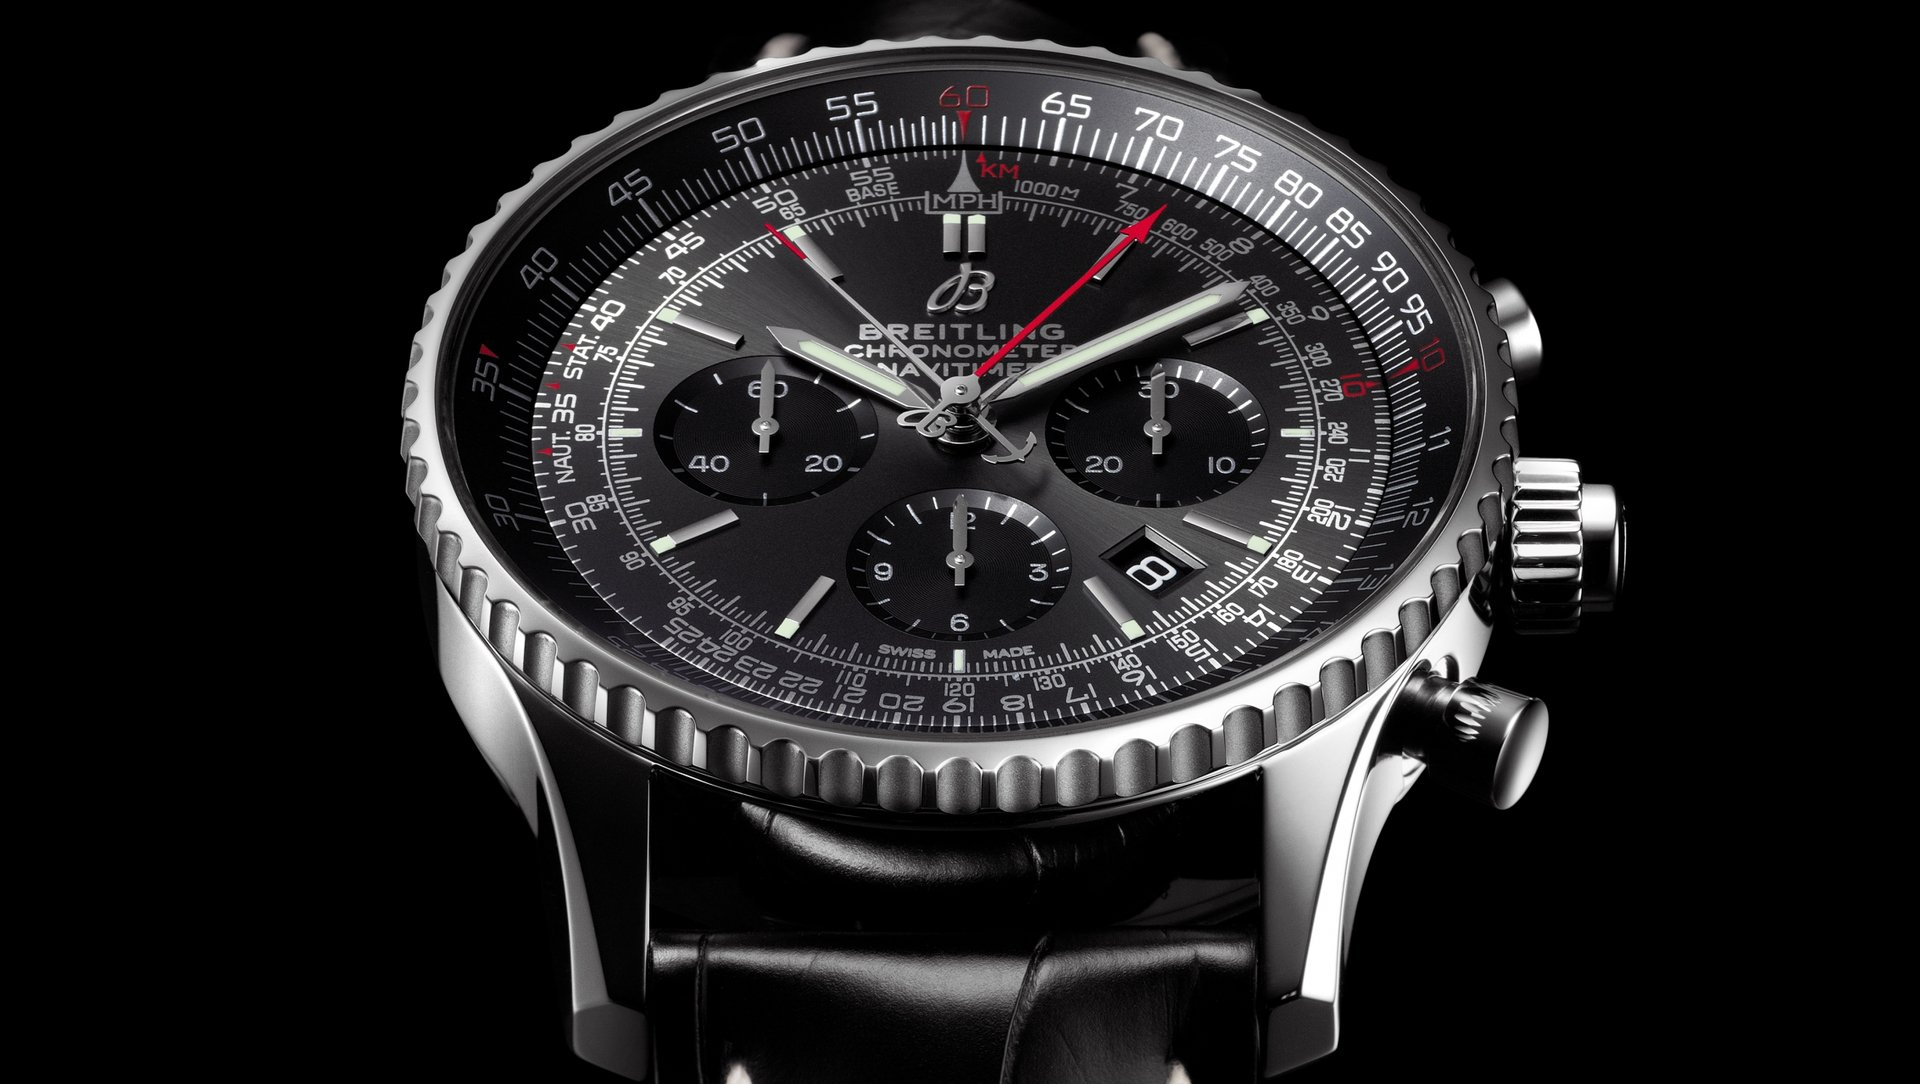 https://static.breitling.cn/media/wysiwyg/news/18-10-19/1.jpg